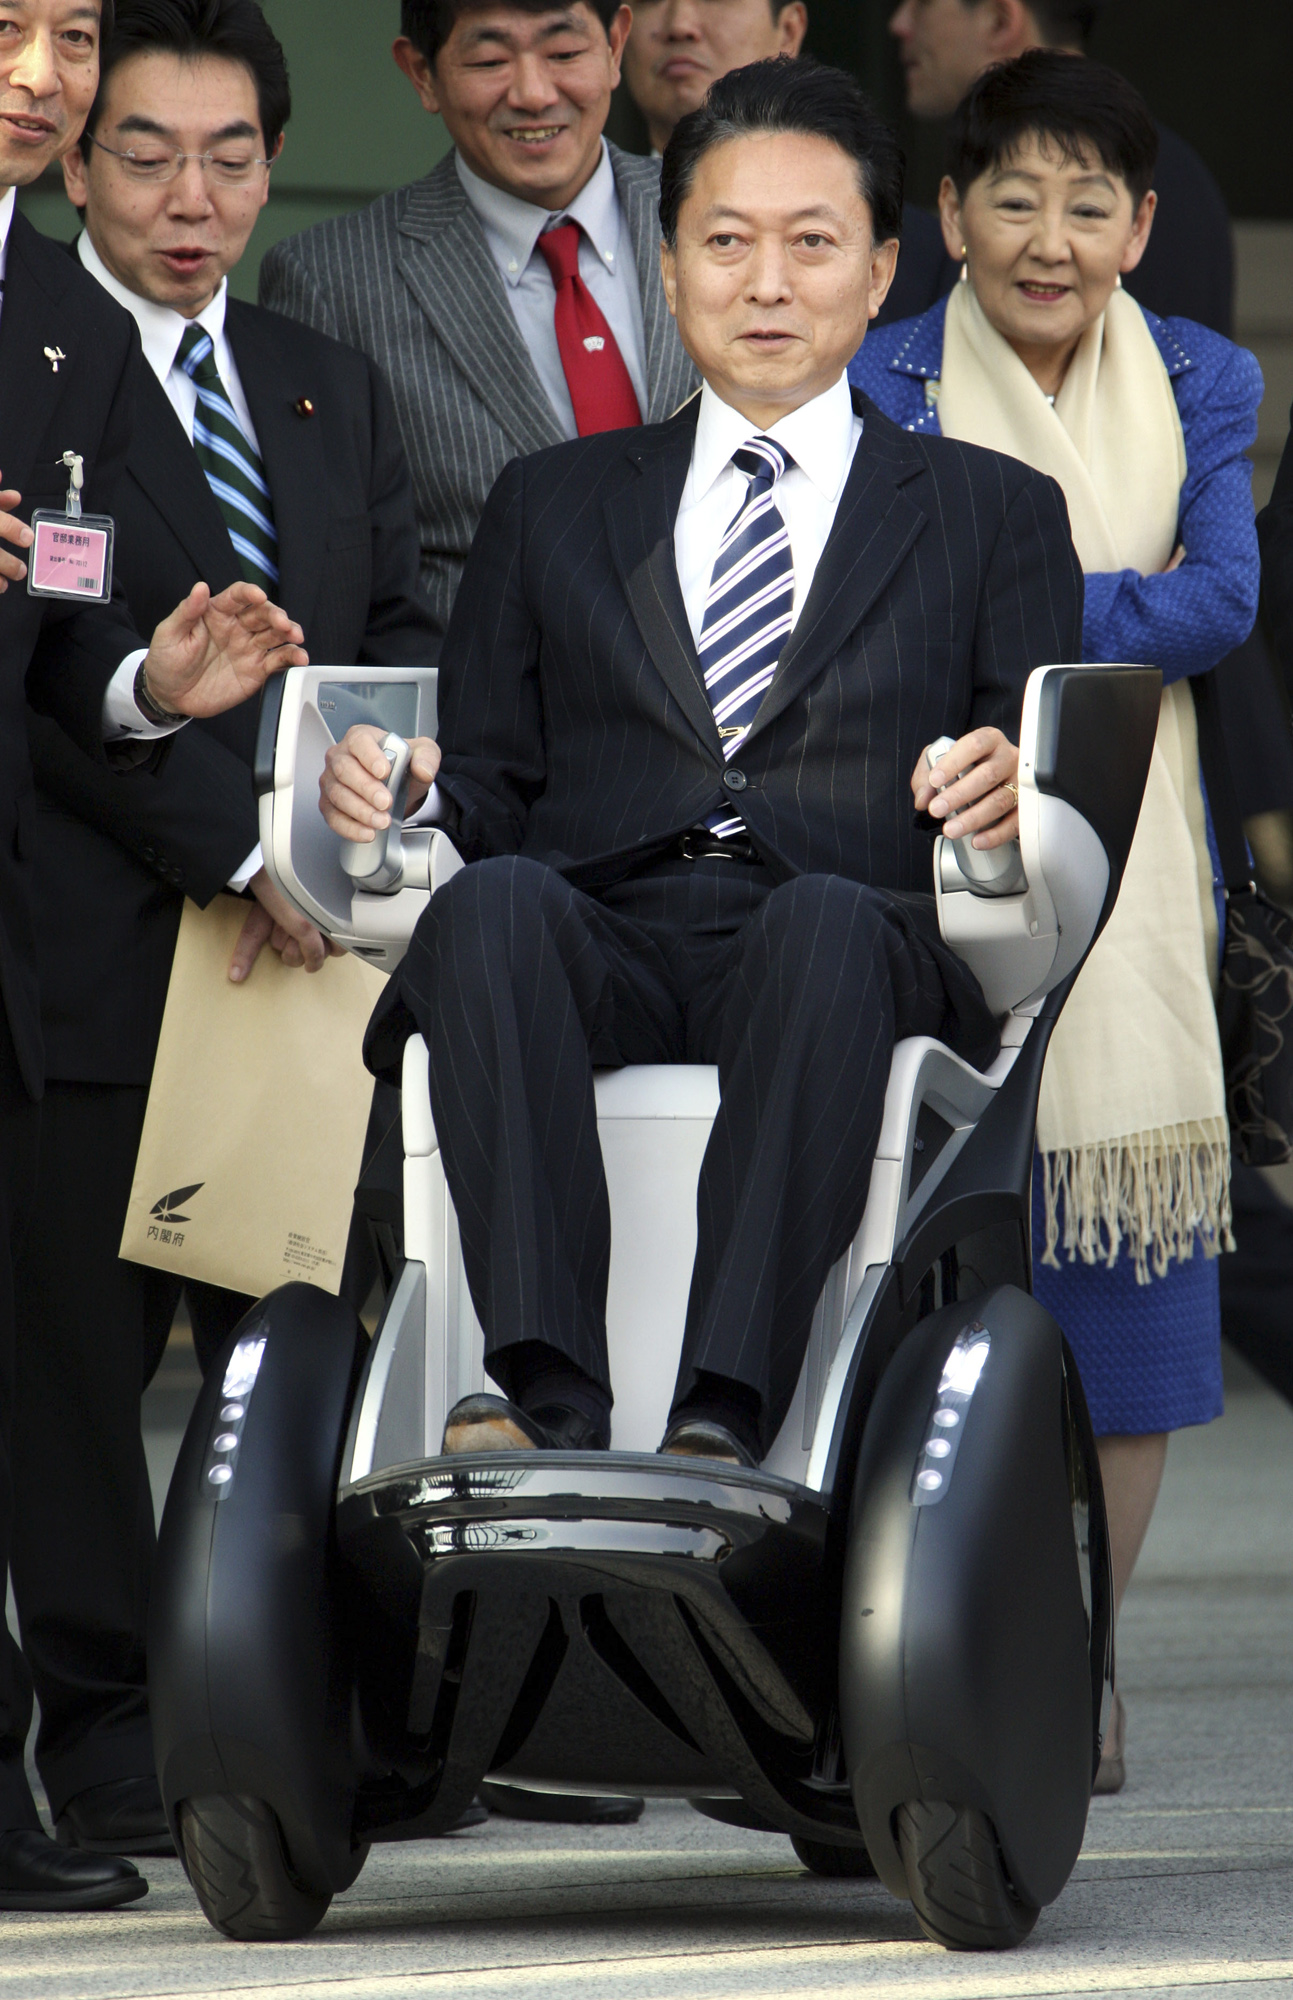 Japan's Prime Minister Yukio Hatoyama tries on a Toyota's personal mobility vehicle 剫-REAL' as part of demonstration to promote green economy at the P...